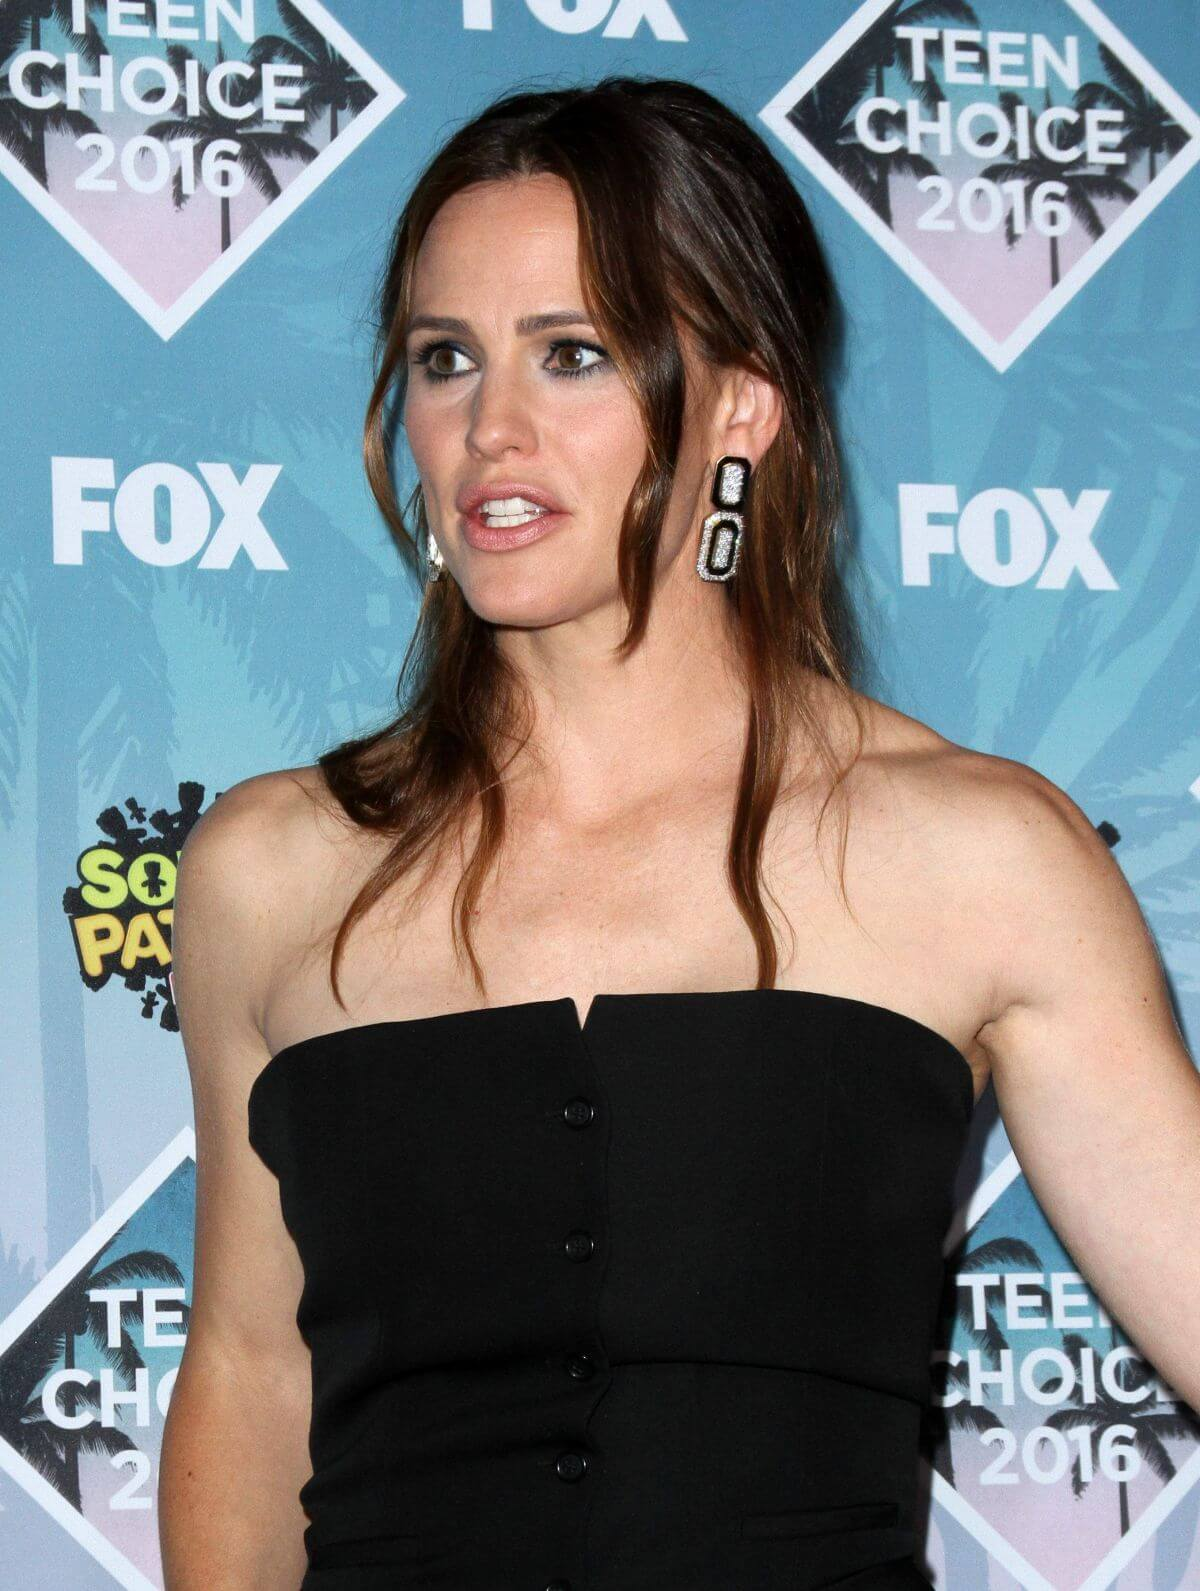 Jennifer Garner at Teen Choice Awards 2016 in Inglewood